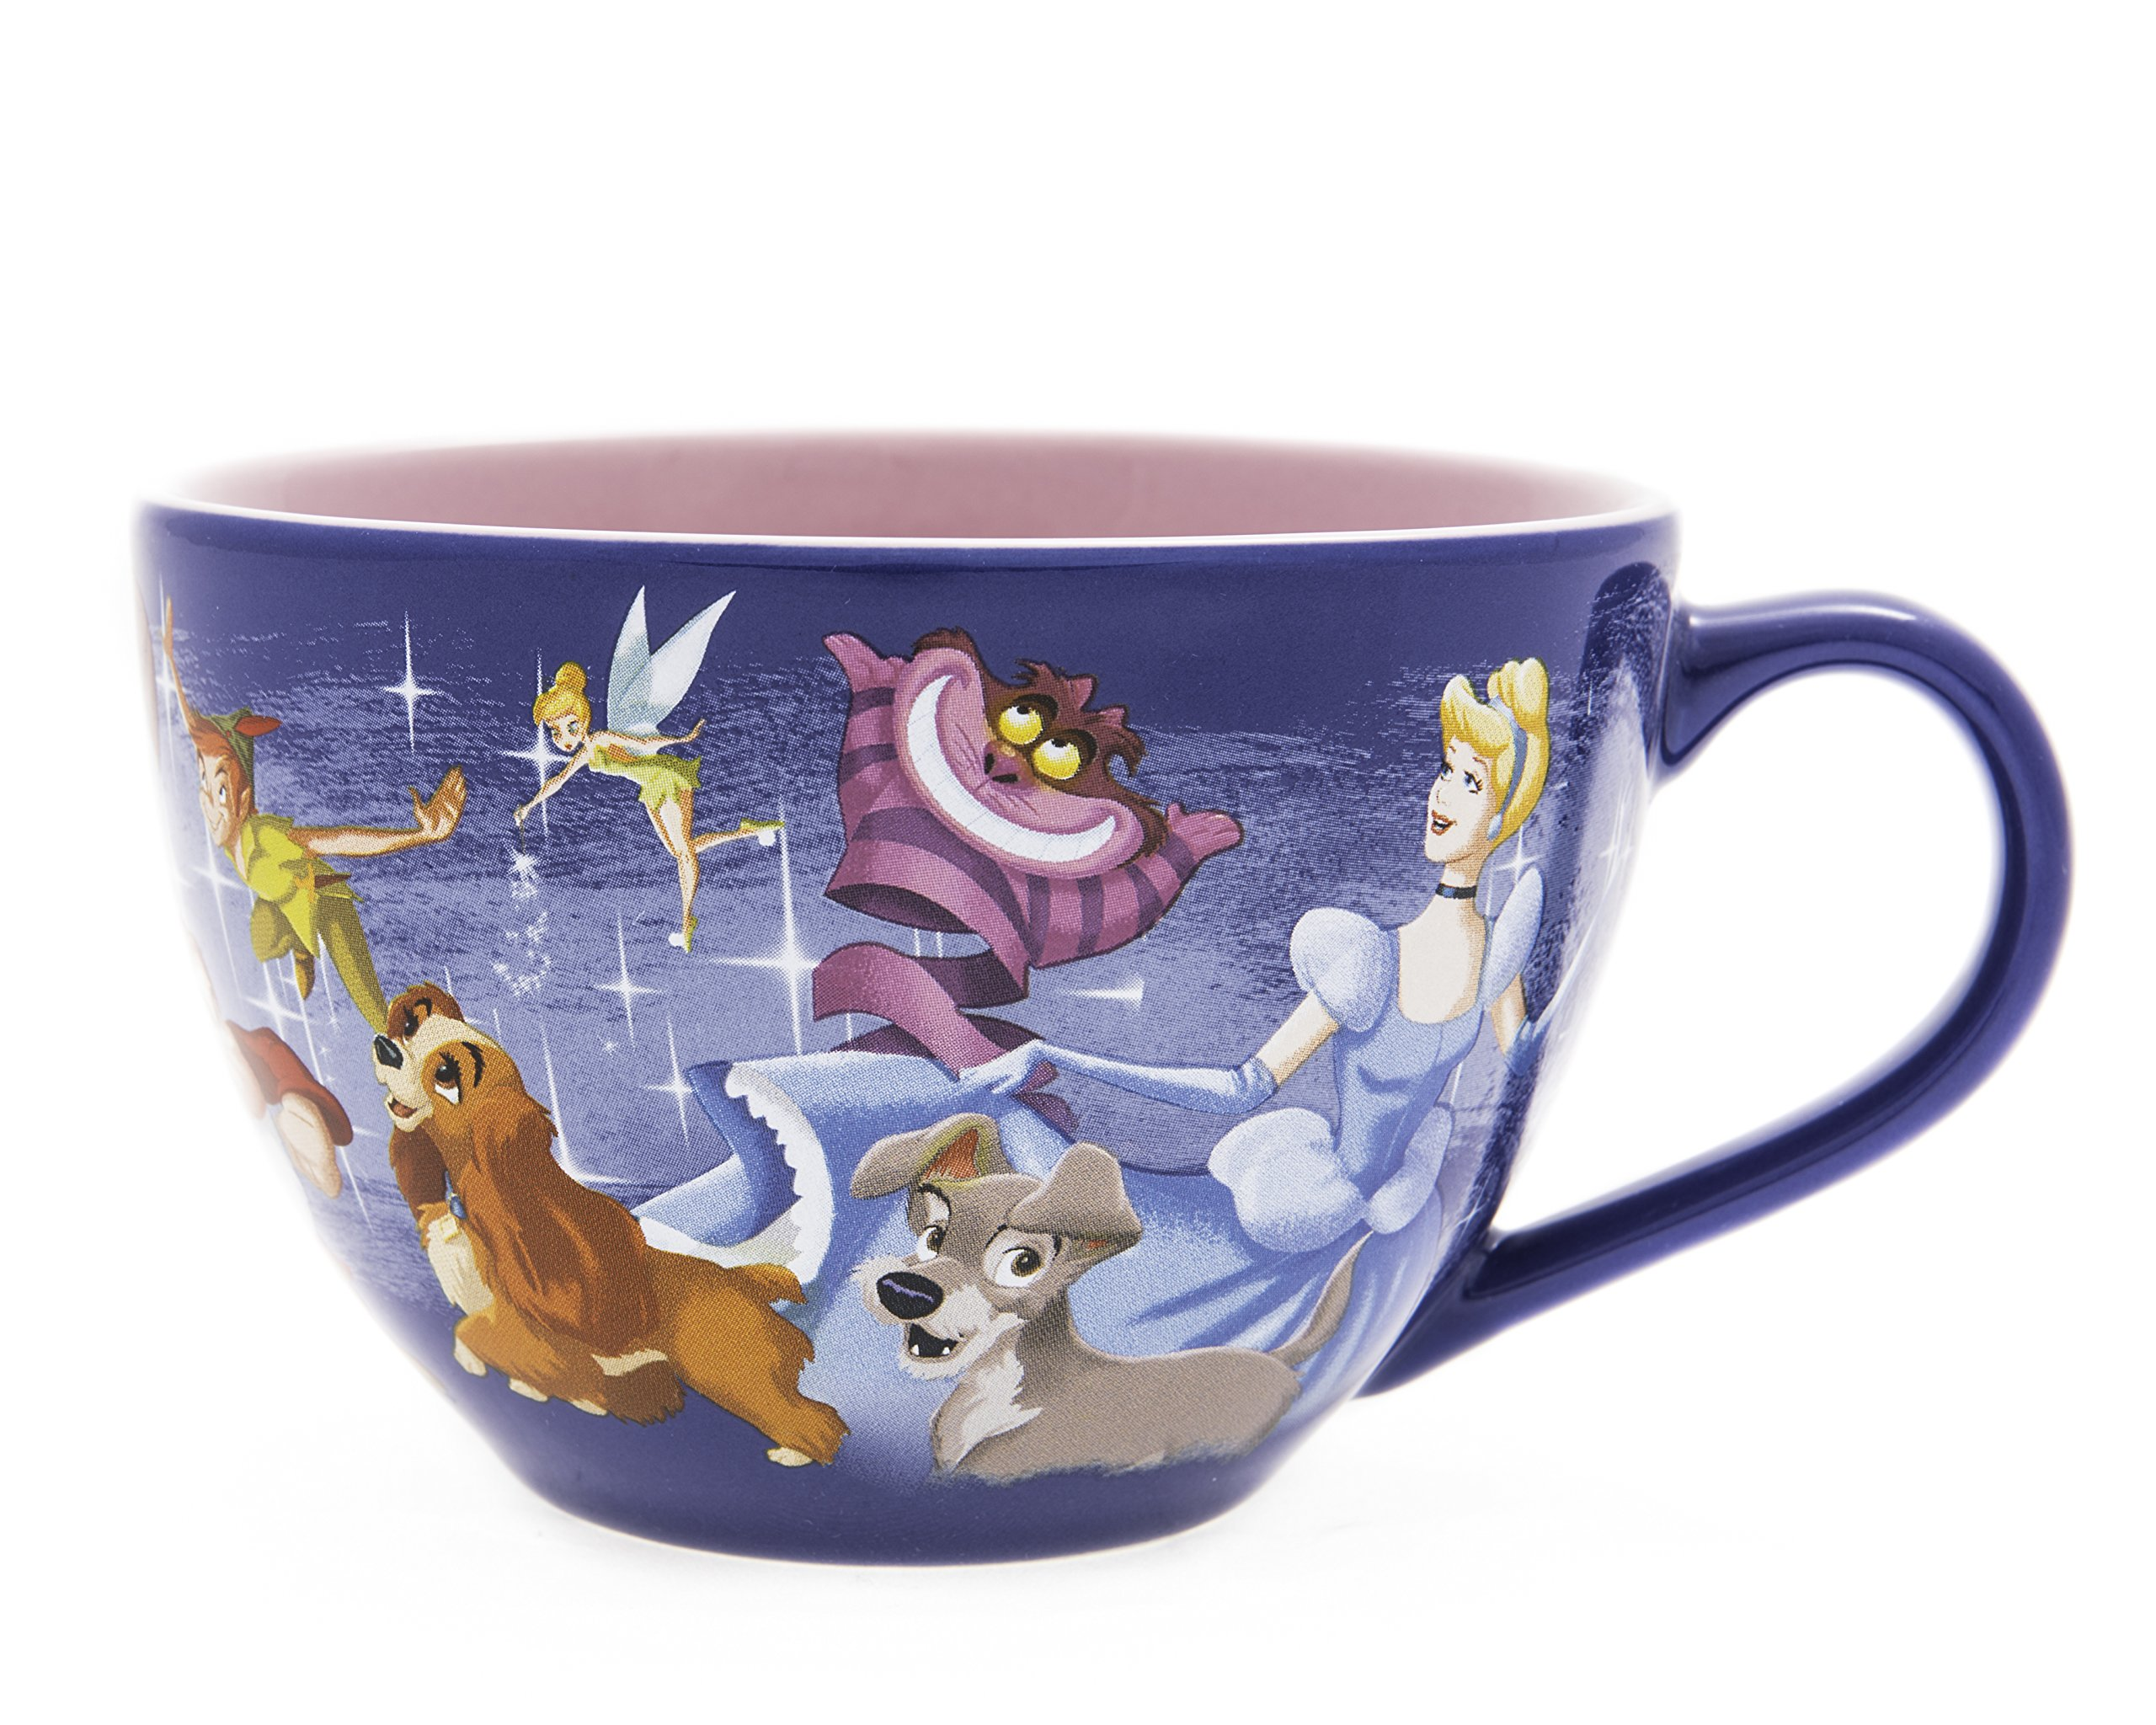 Disney Exclusive: Retired Disney Friends Large Cappuccino or Soup Mug (1, purple)